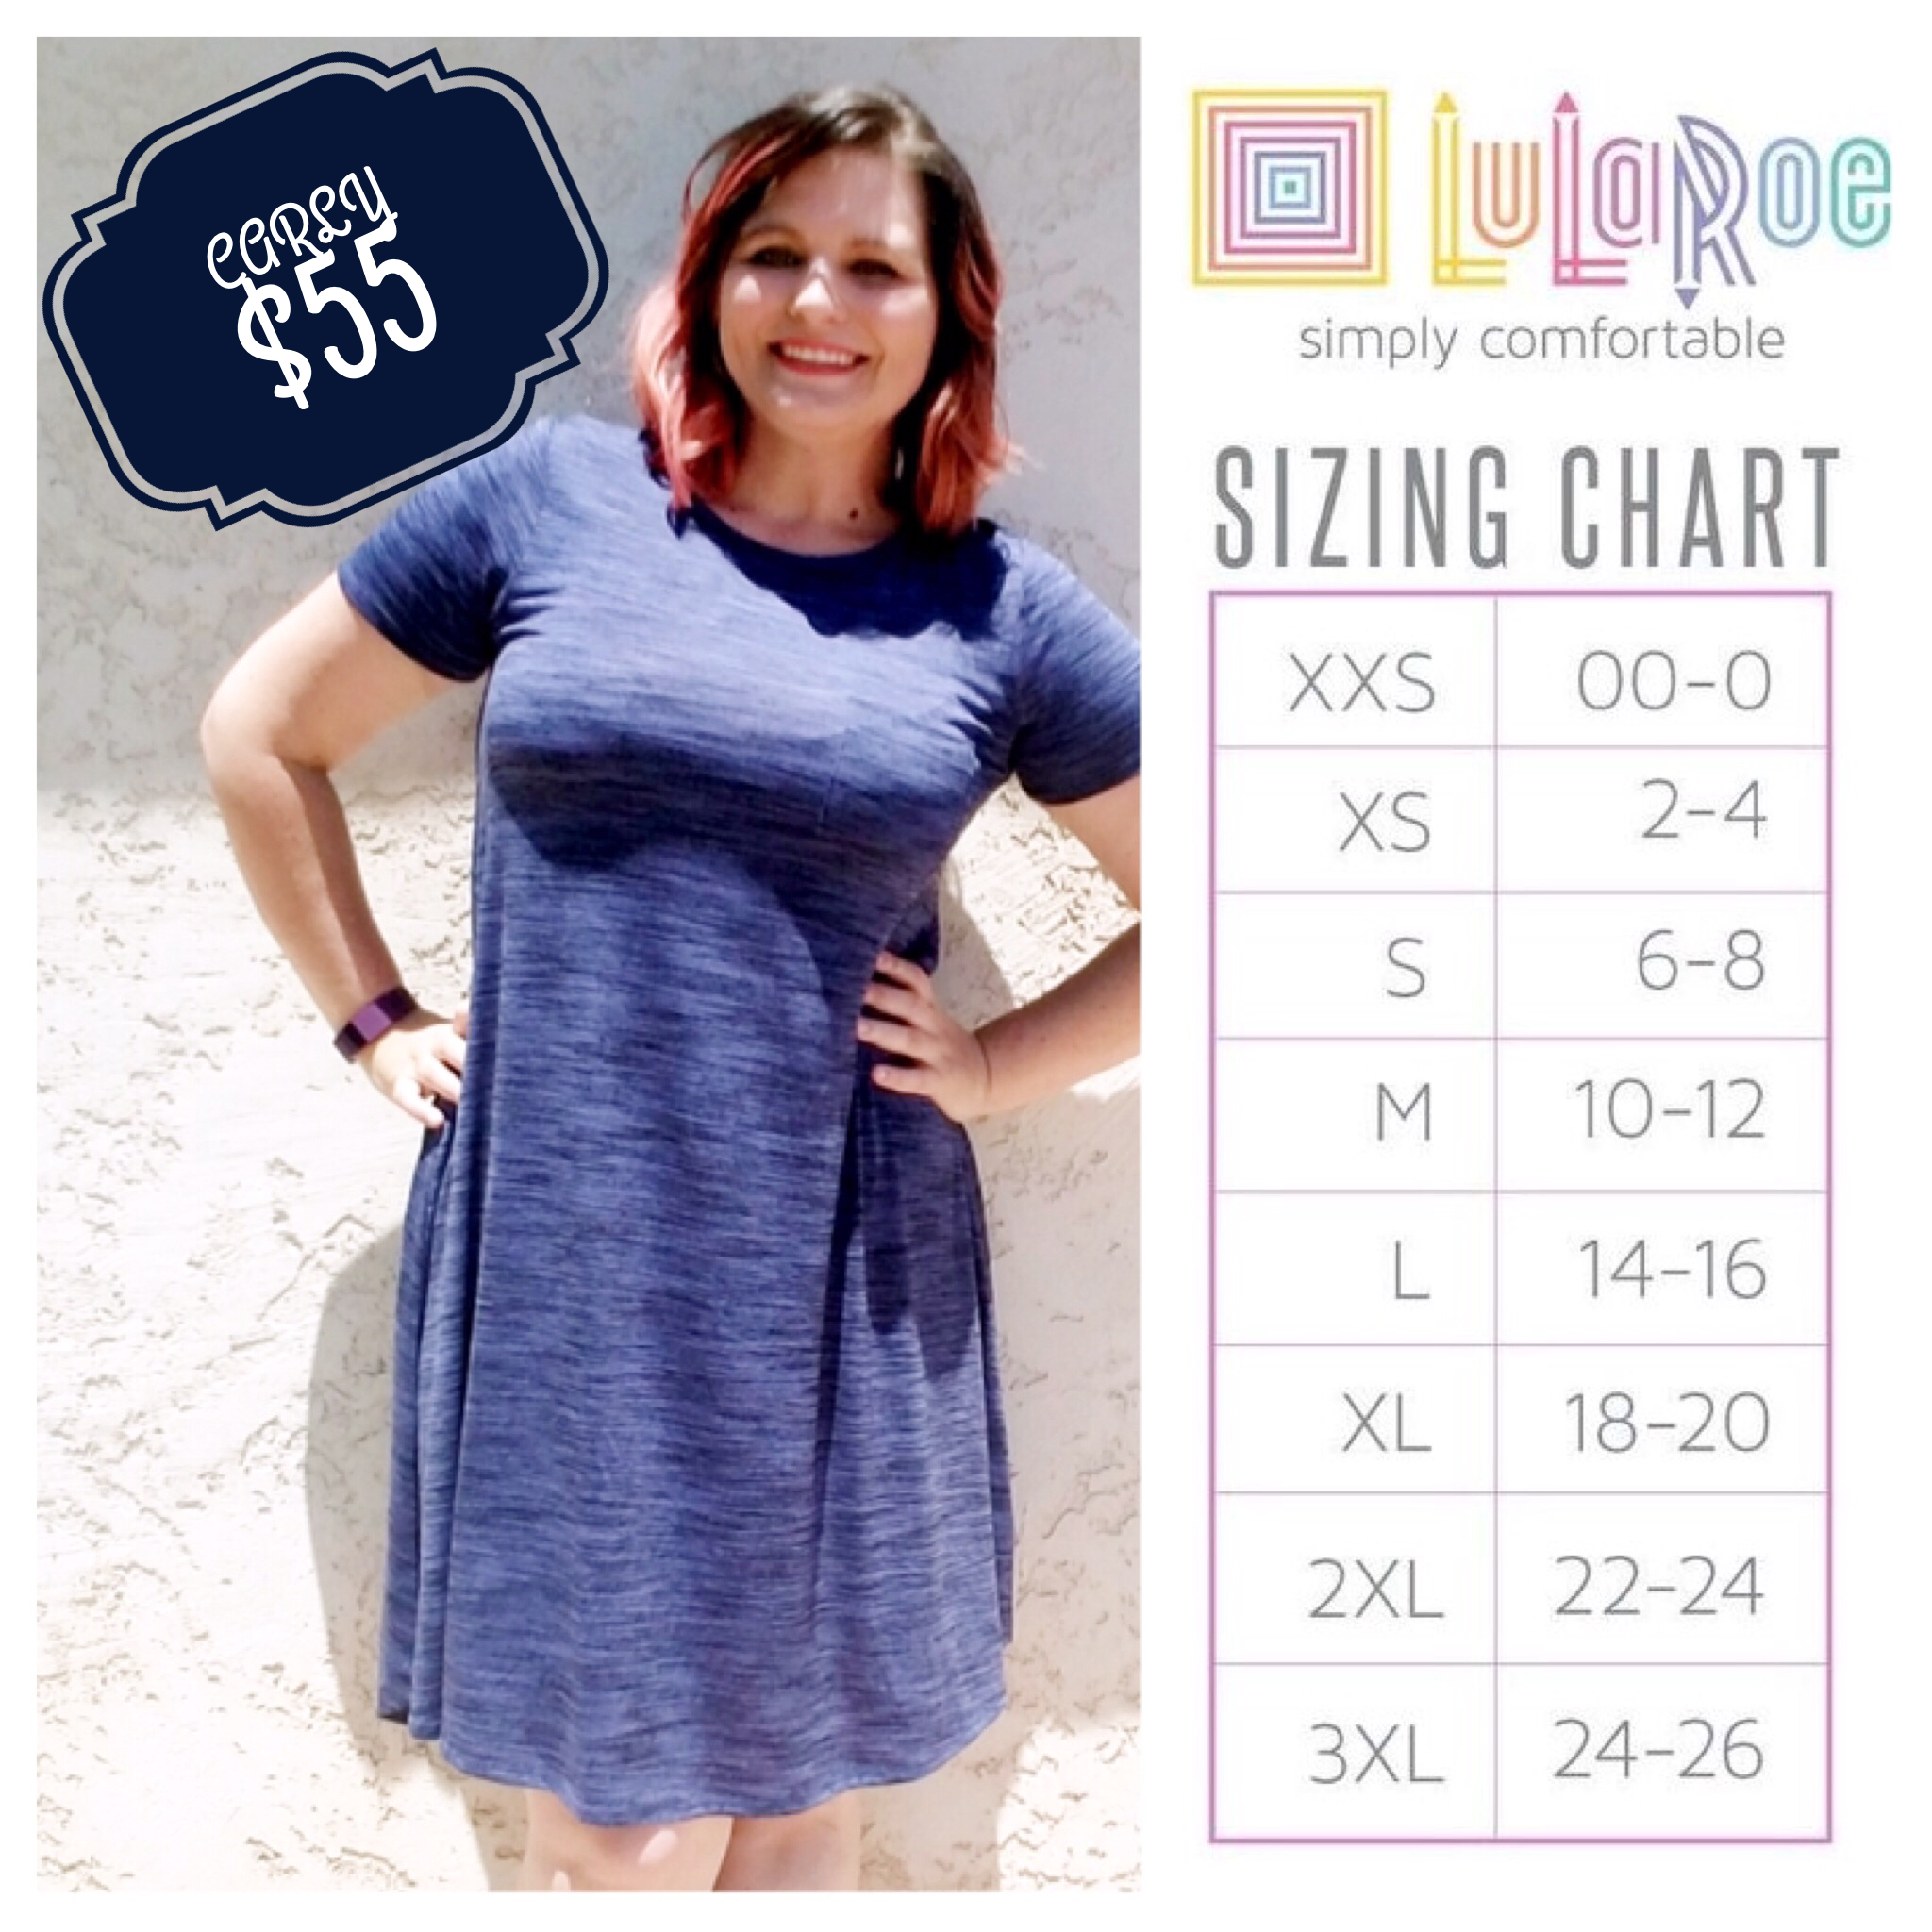 LuLaRoe Carly sizing chart